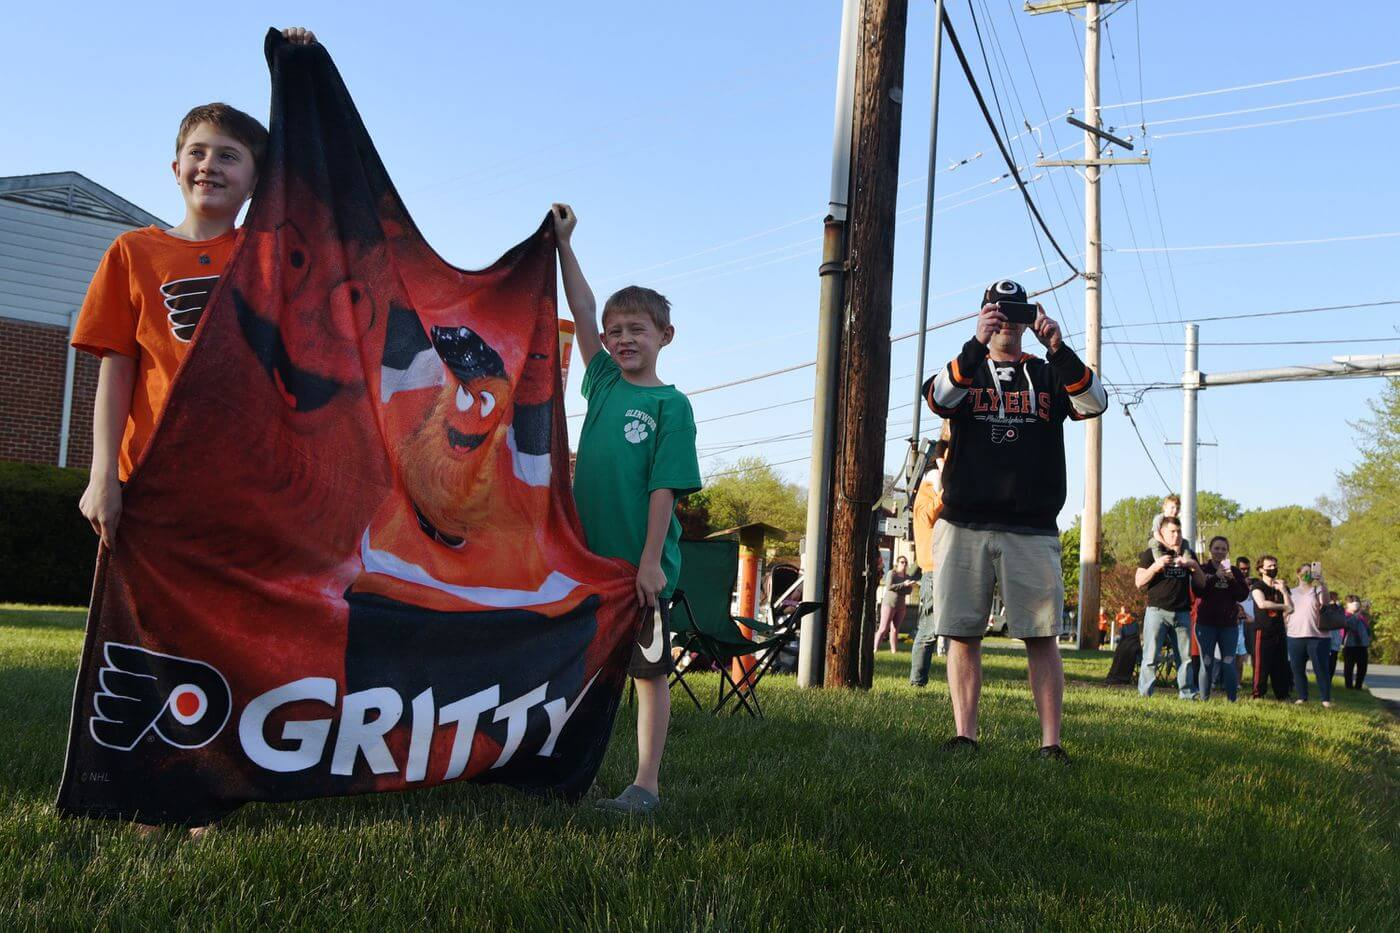 Gritty Heads First Responders Parade in Middletown to the Delight of His Quarantined Fans